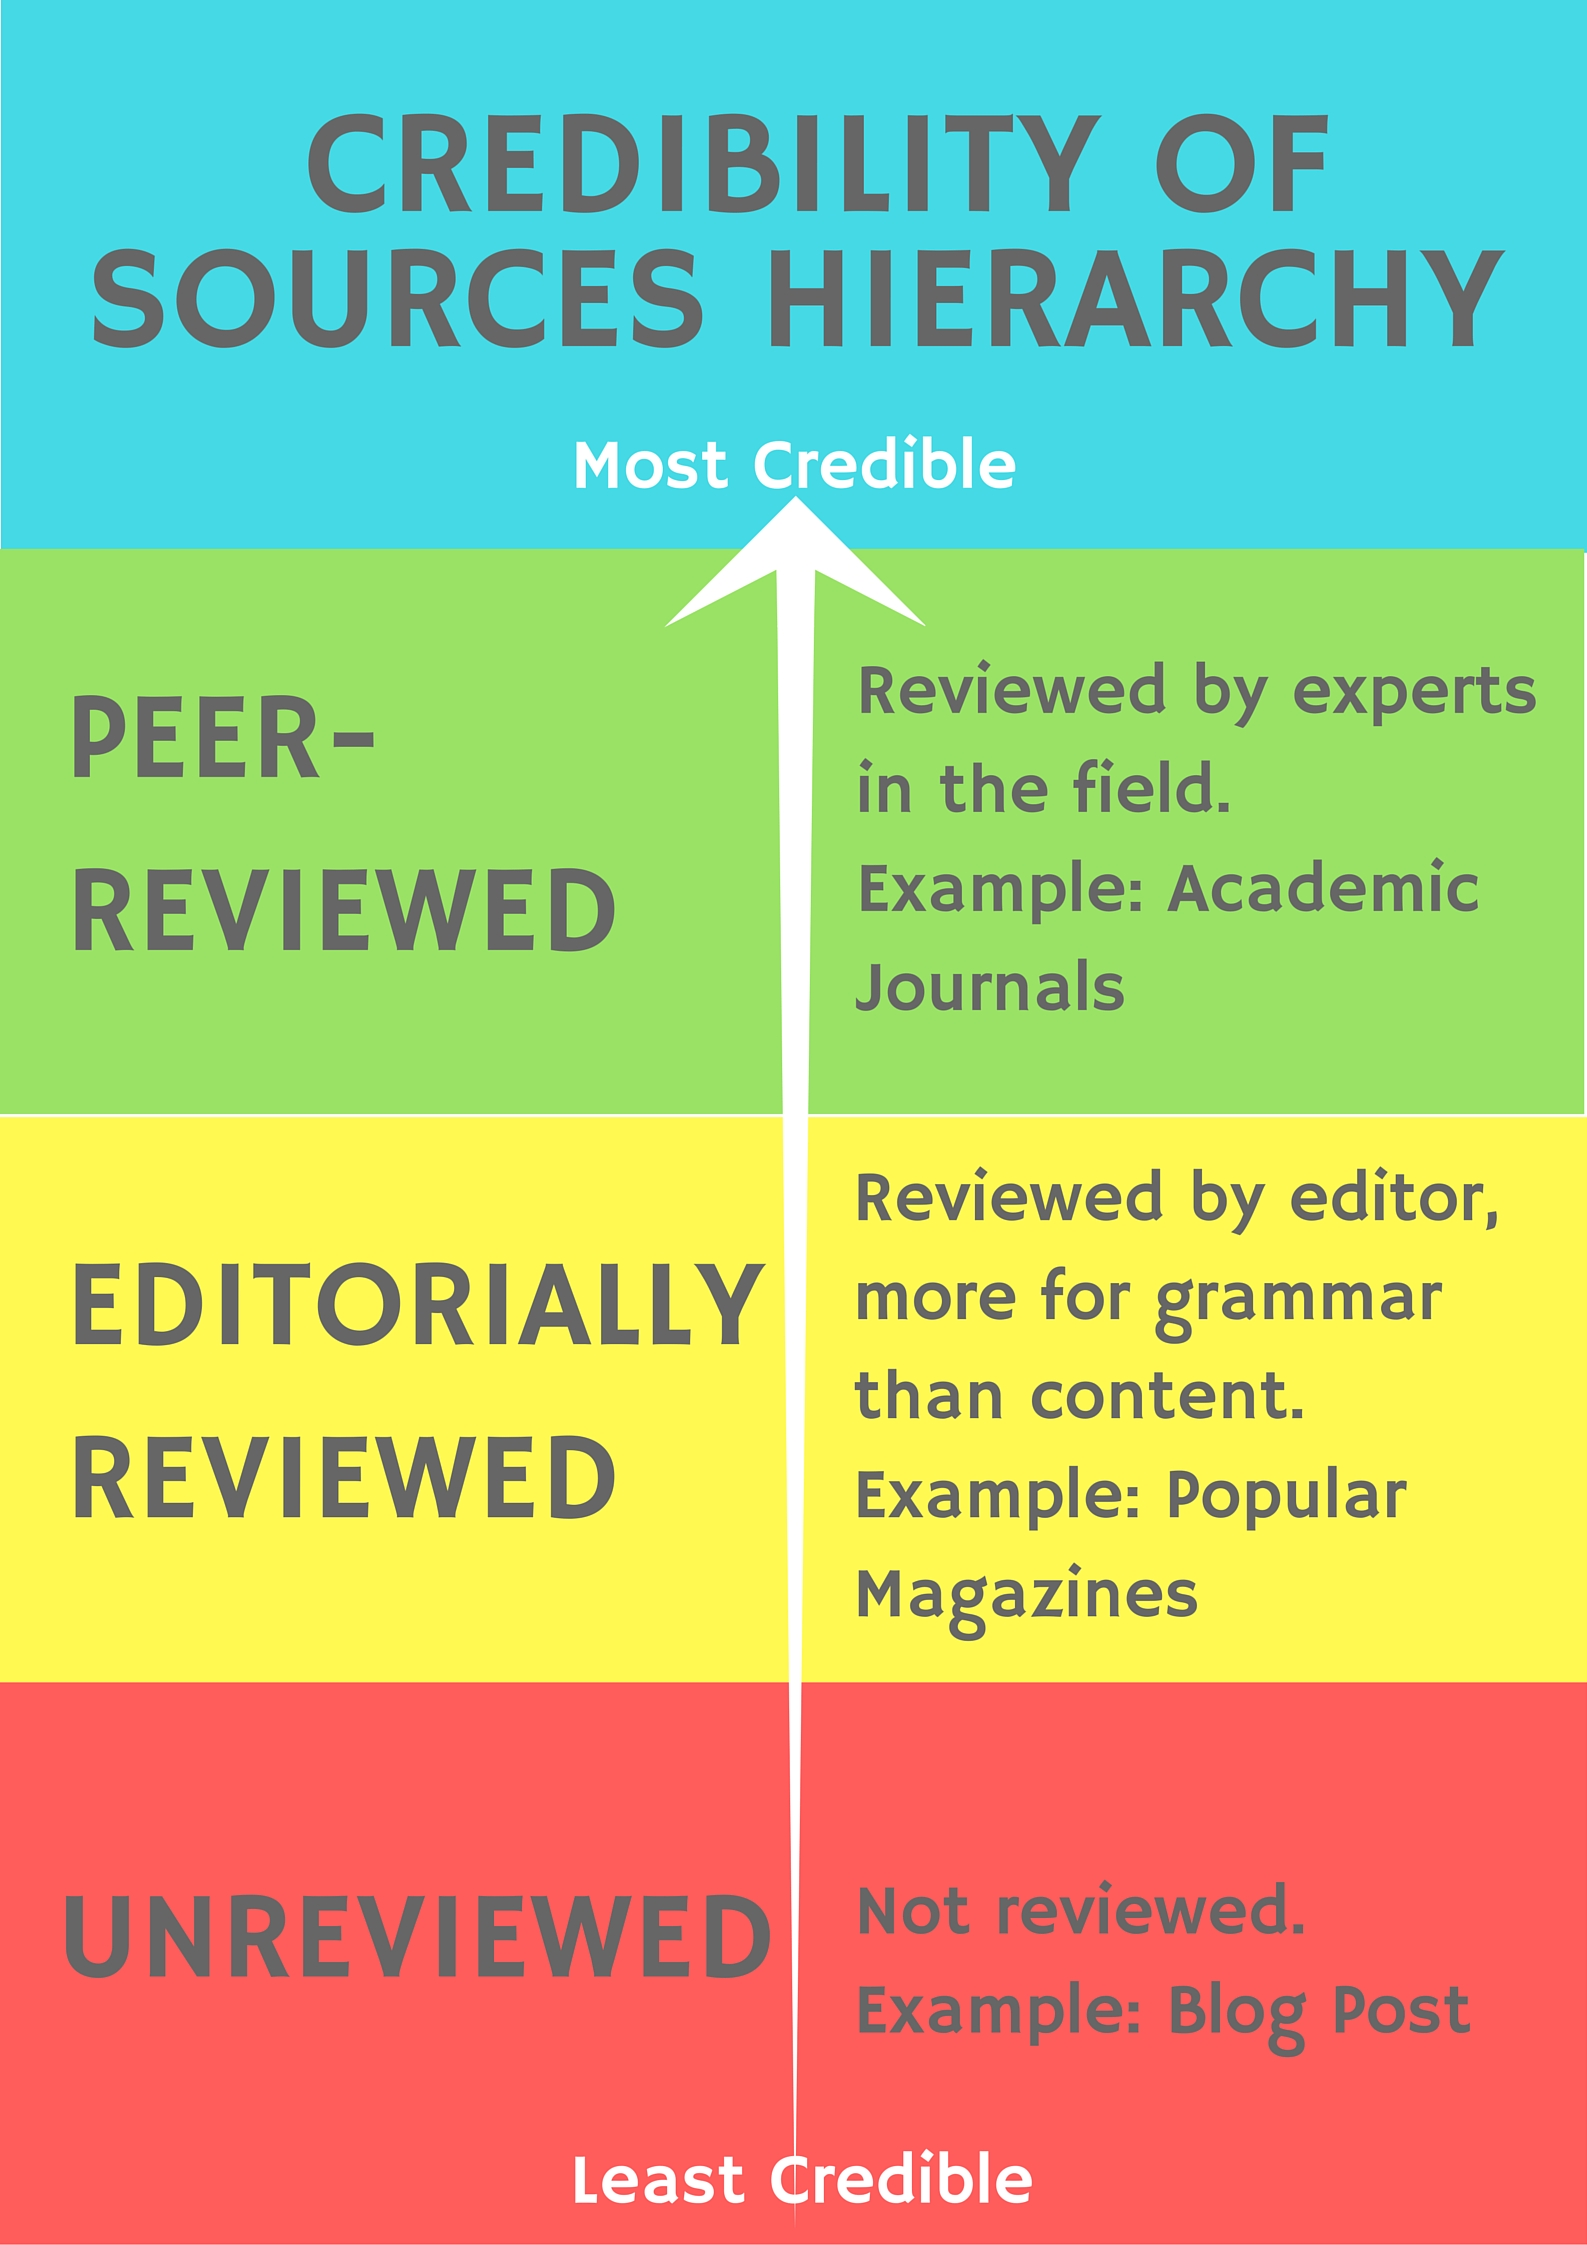 Credibility of Sources Hierarchy Infographic Least Credible - Unreviewed Sources, then Editorially Reviewed Sources, the Most Credible - Peer-Reviewed Sources